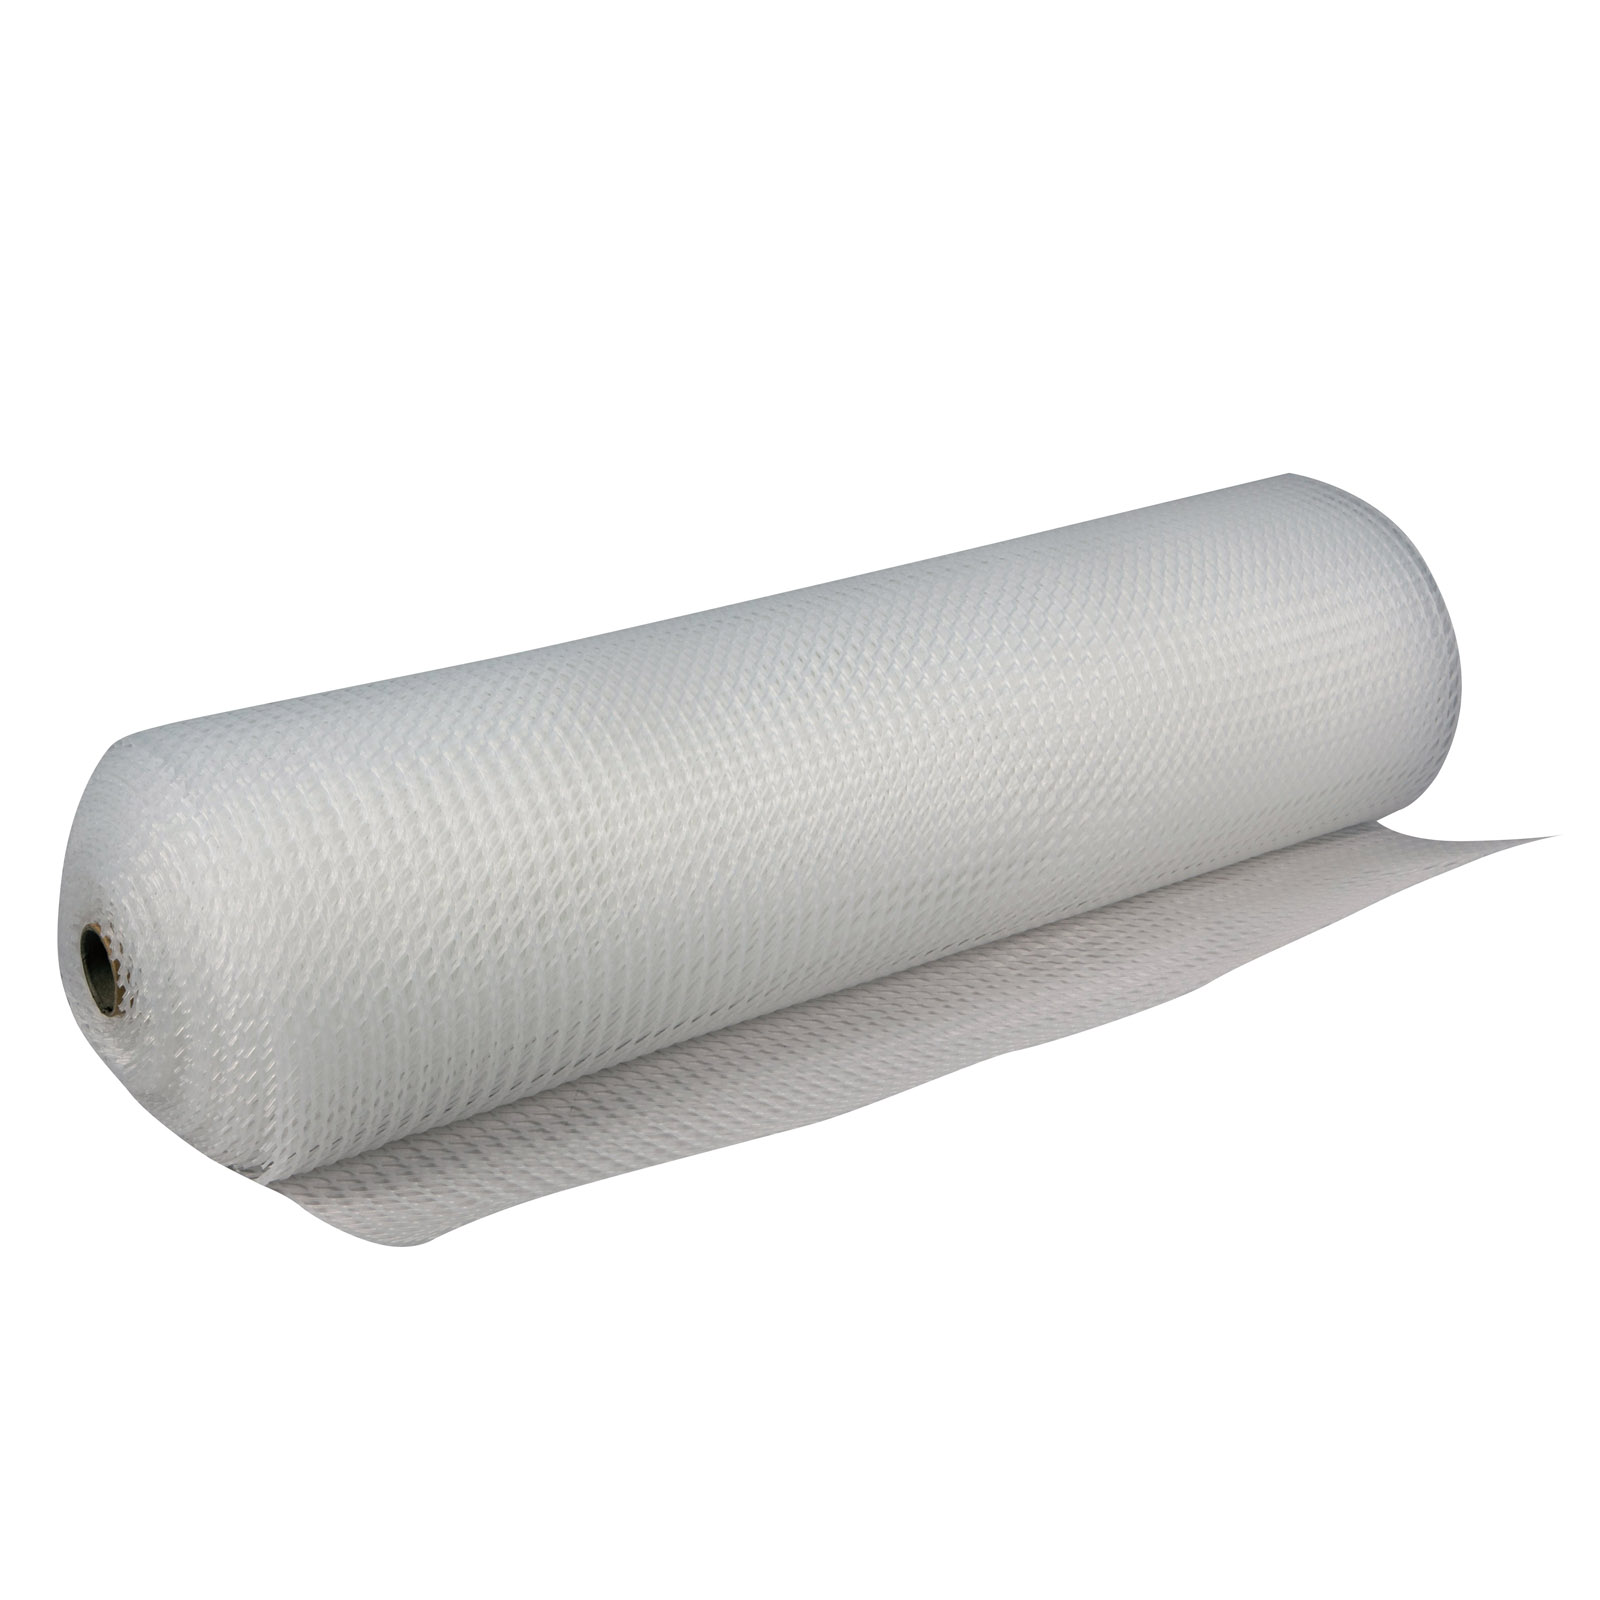 San Jamar UL5403 bar & shelf liner, roll